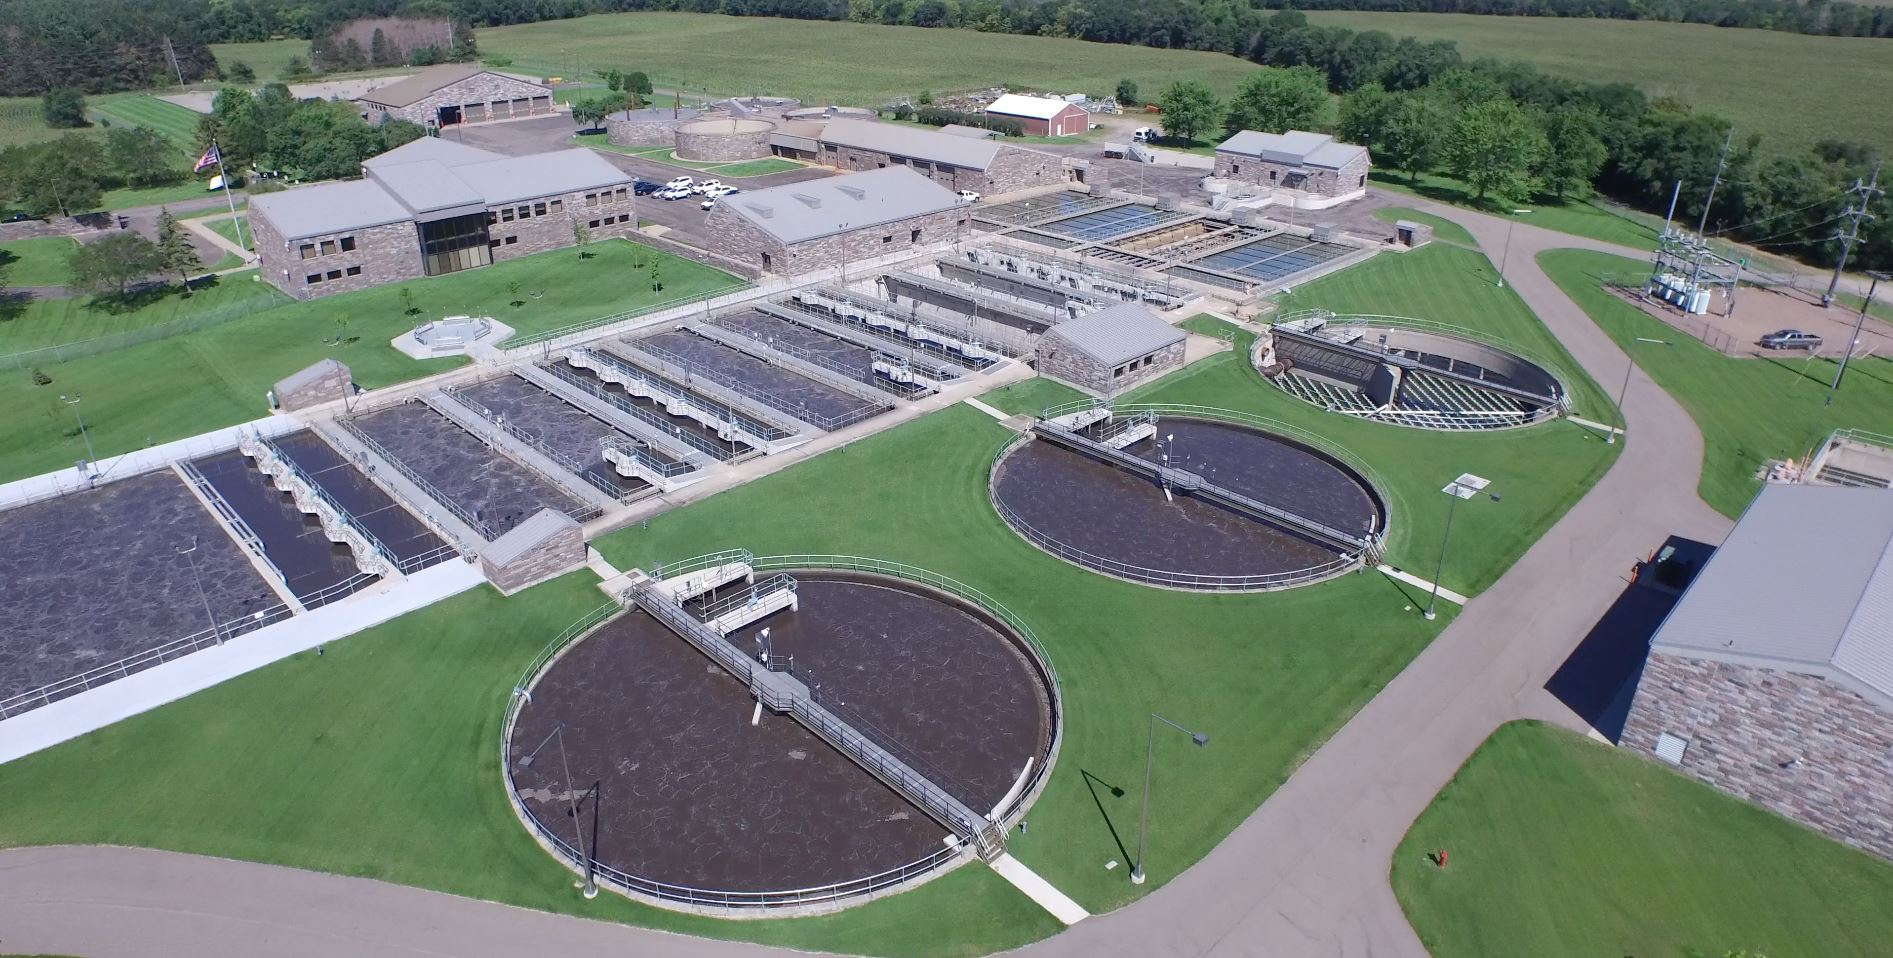 Aerial Photo of buildings, water tanks, pools of water, and wastewater treatment equipment